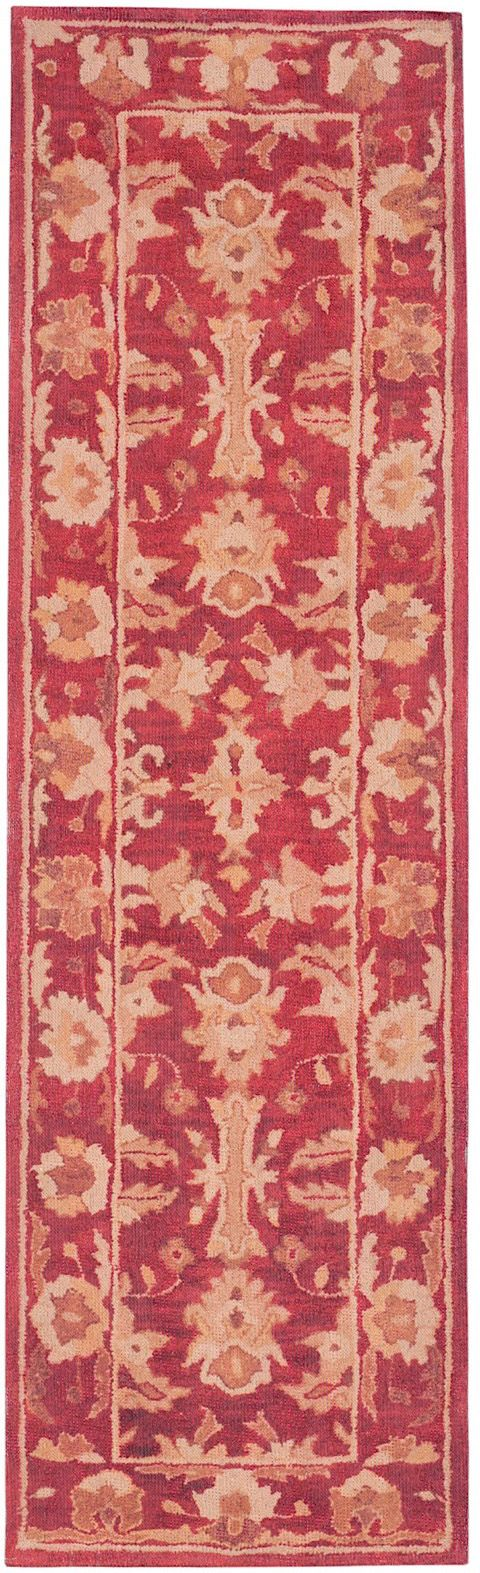 trans ocean marbella traditional area rug collection